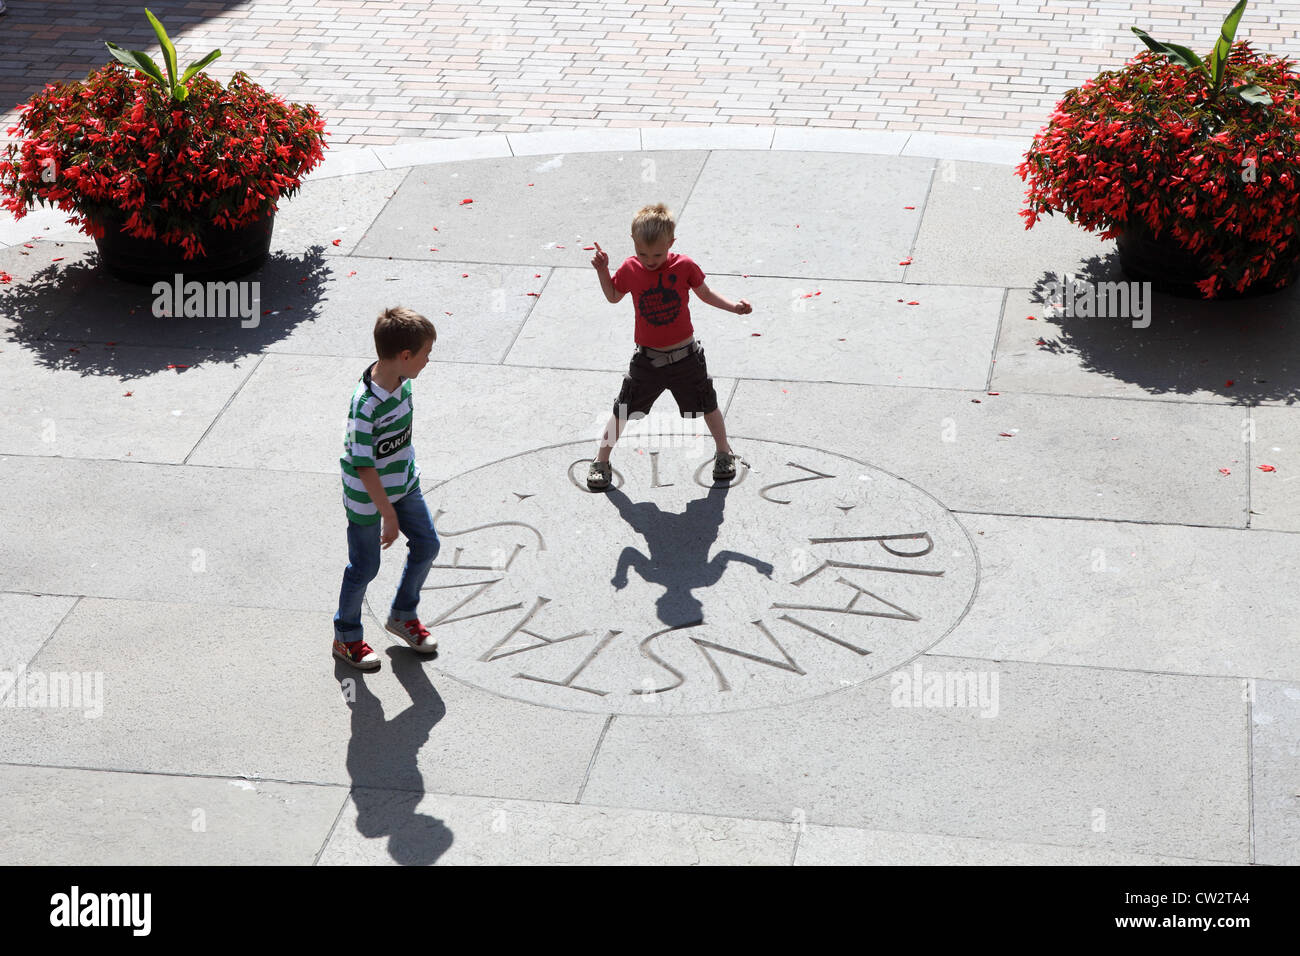 two-young-boys-making-shadows-dumfries-s